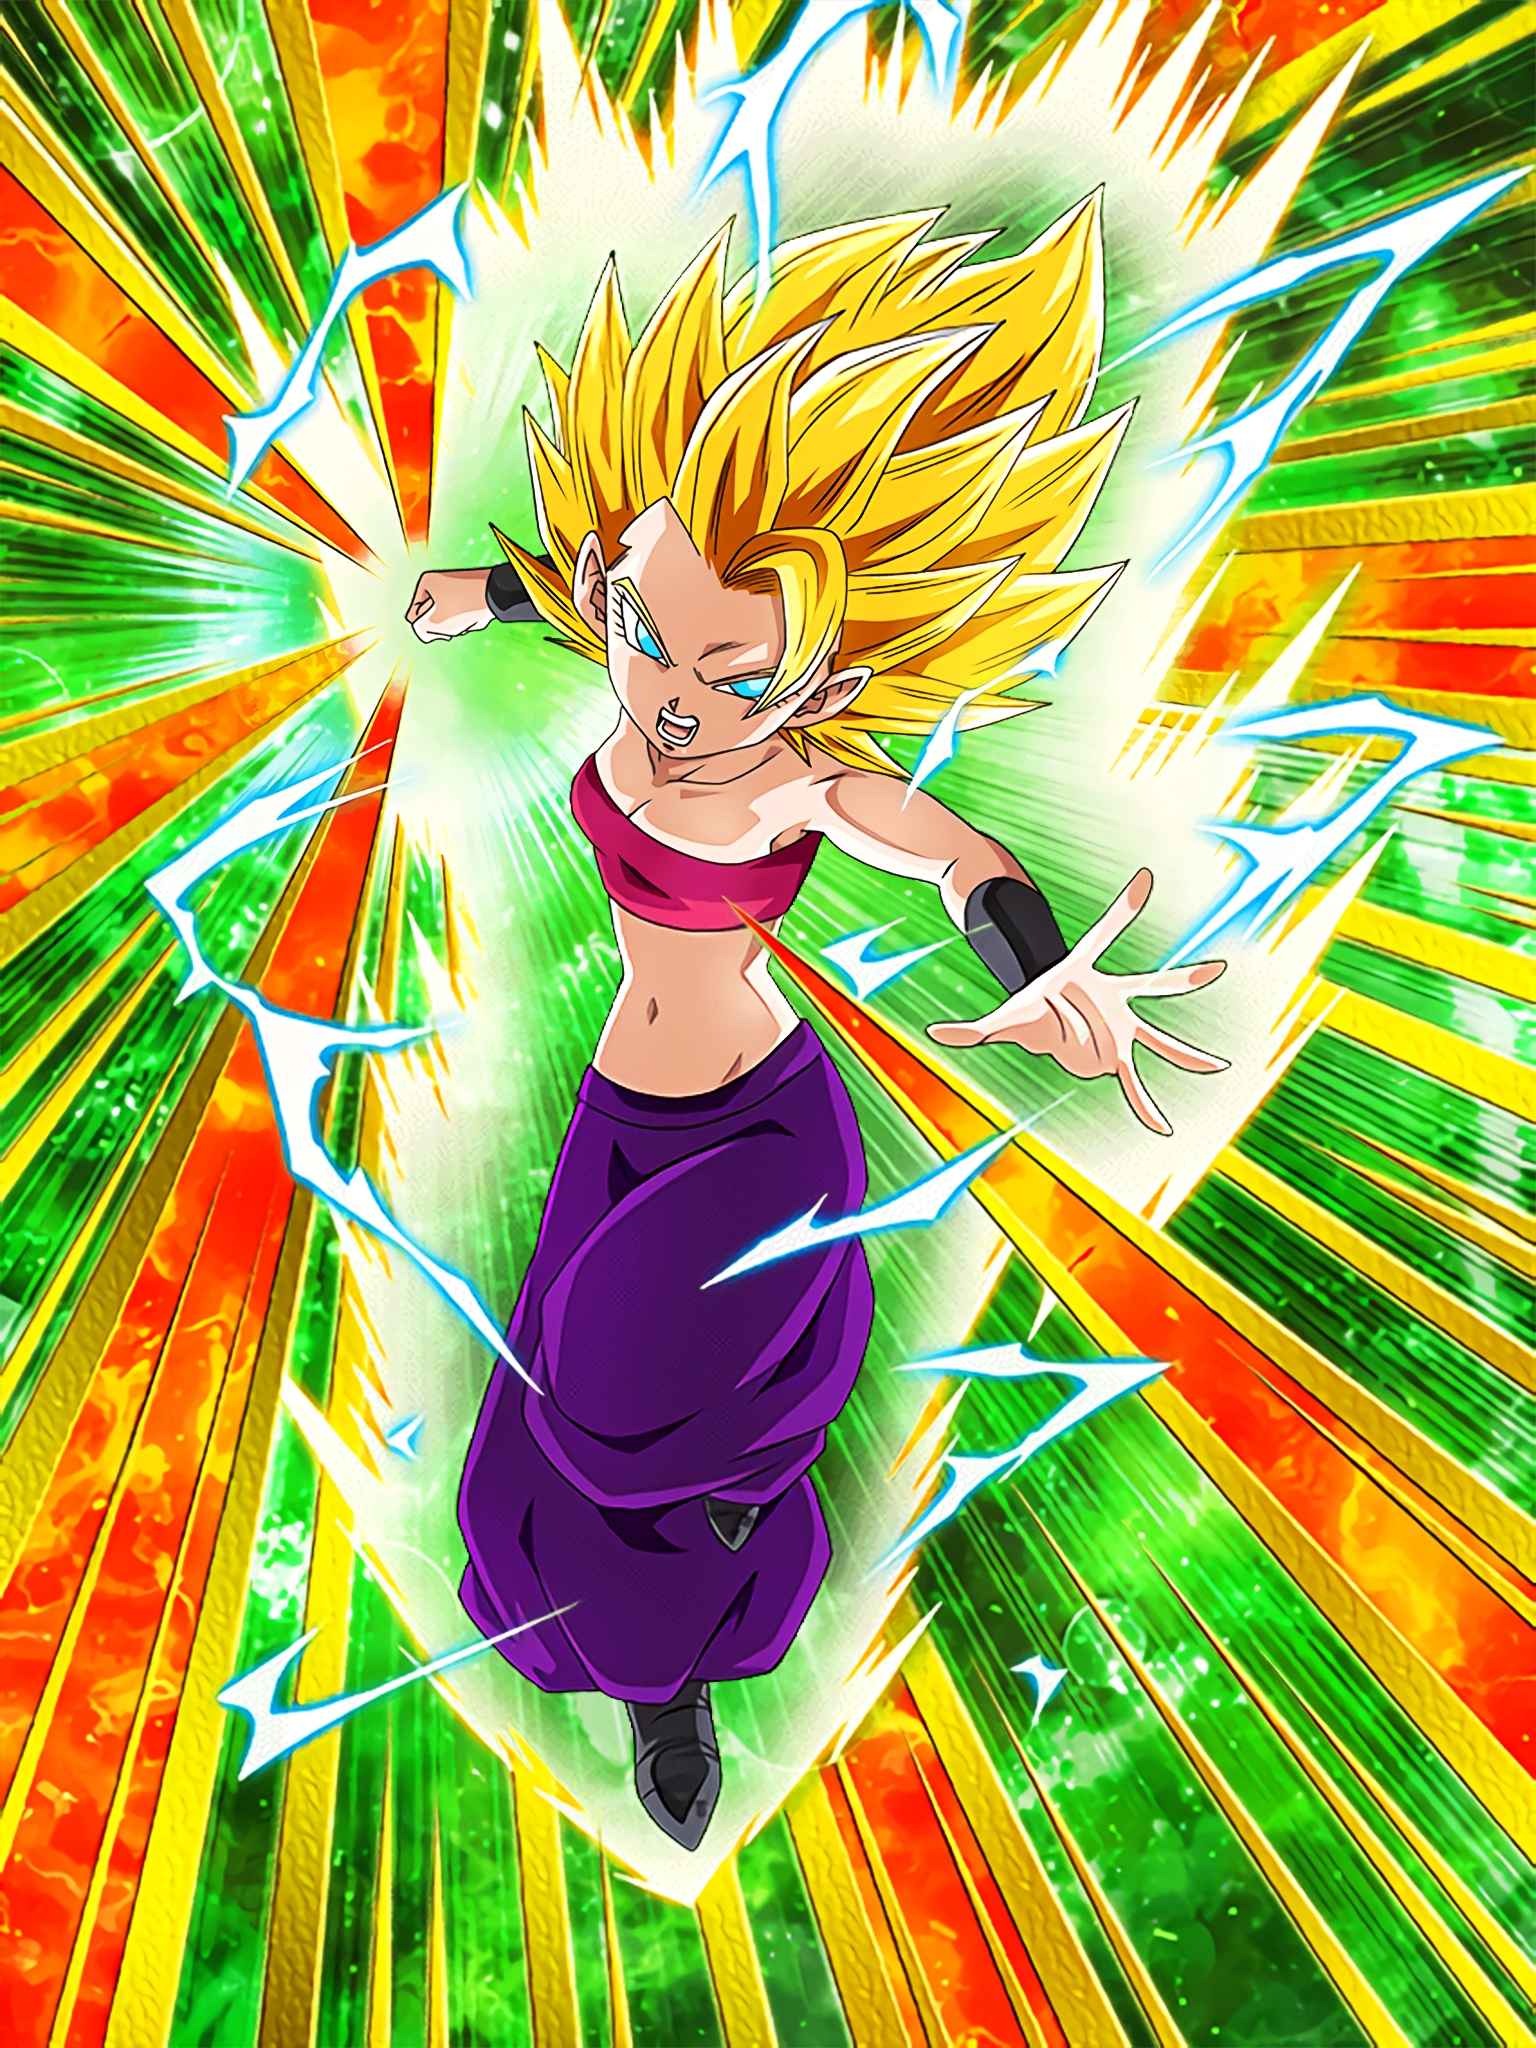 Motivation to Fight Super Saiyan 2 Caulifla Art (Dragon Ball Z Dokkan Battle)